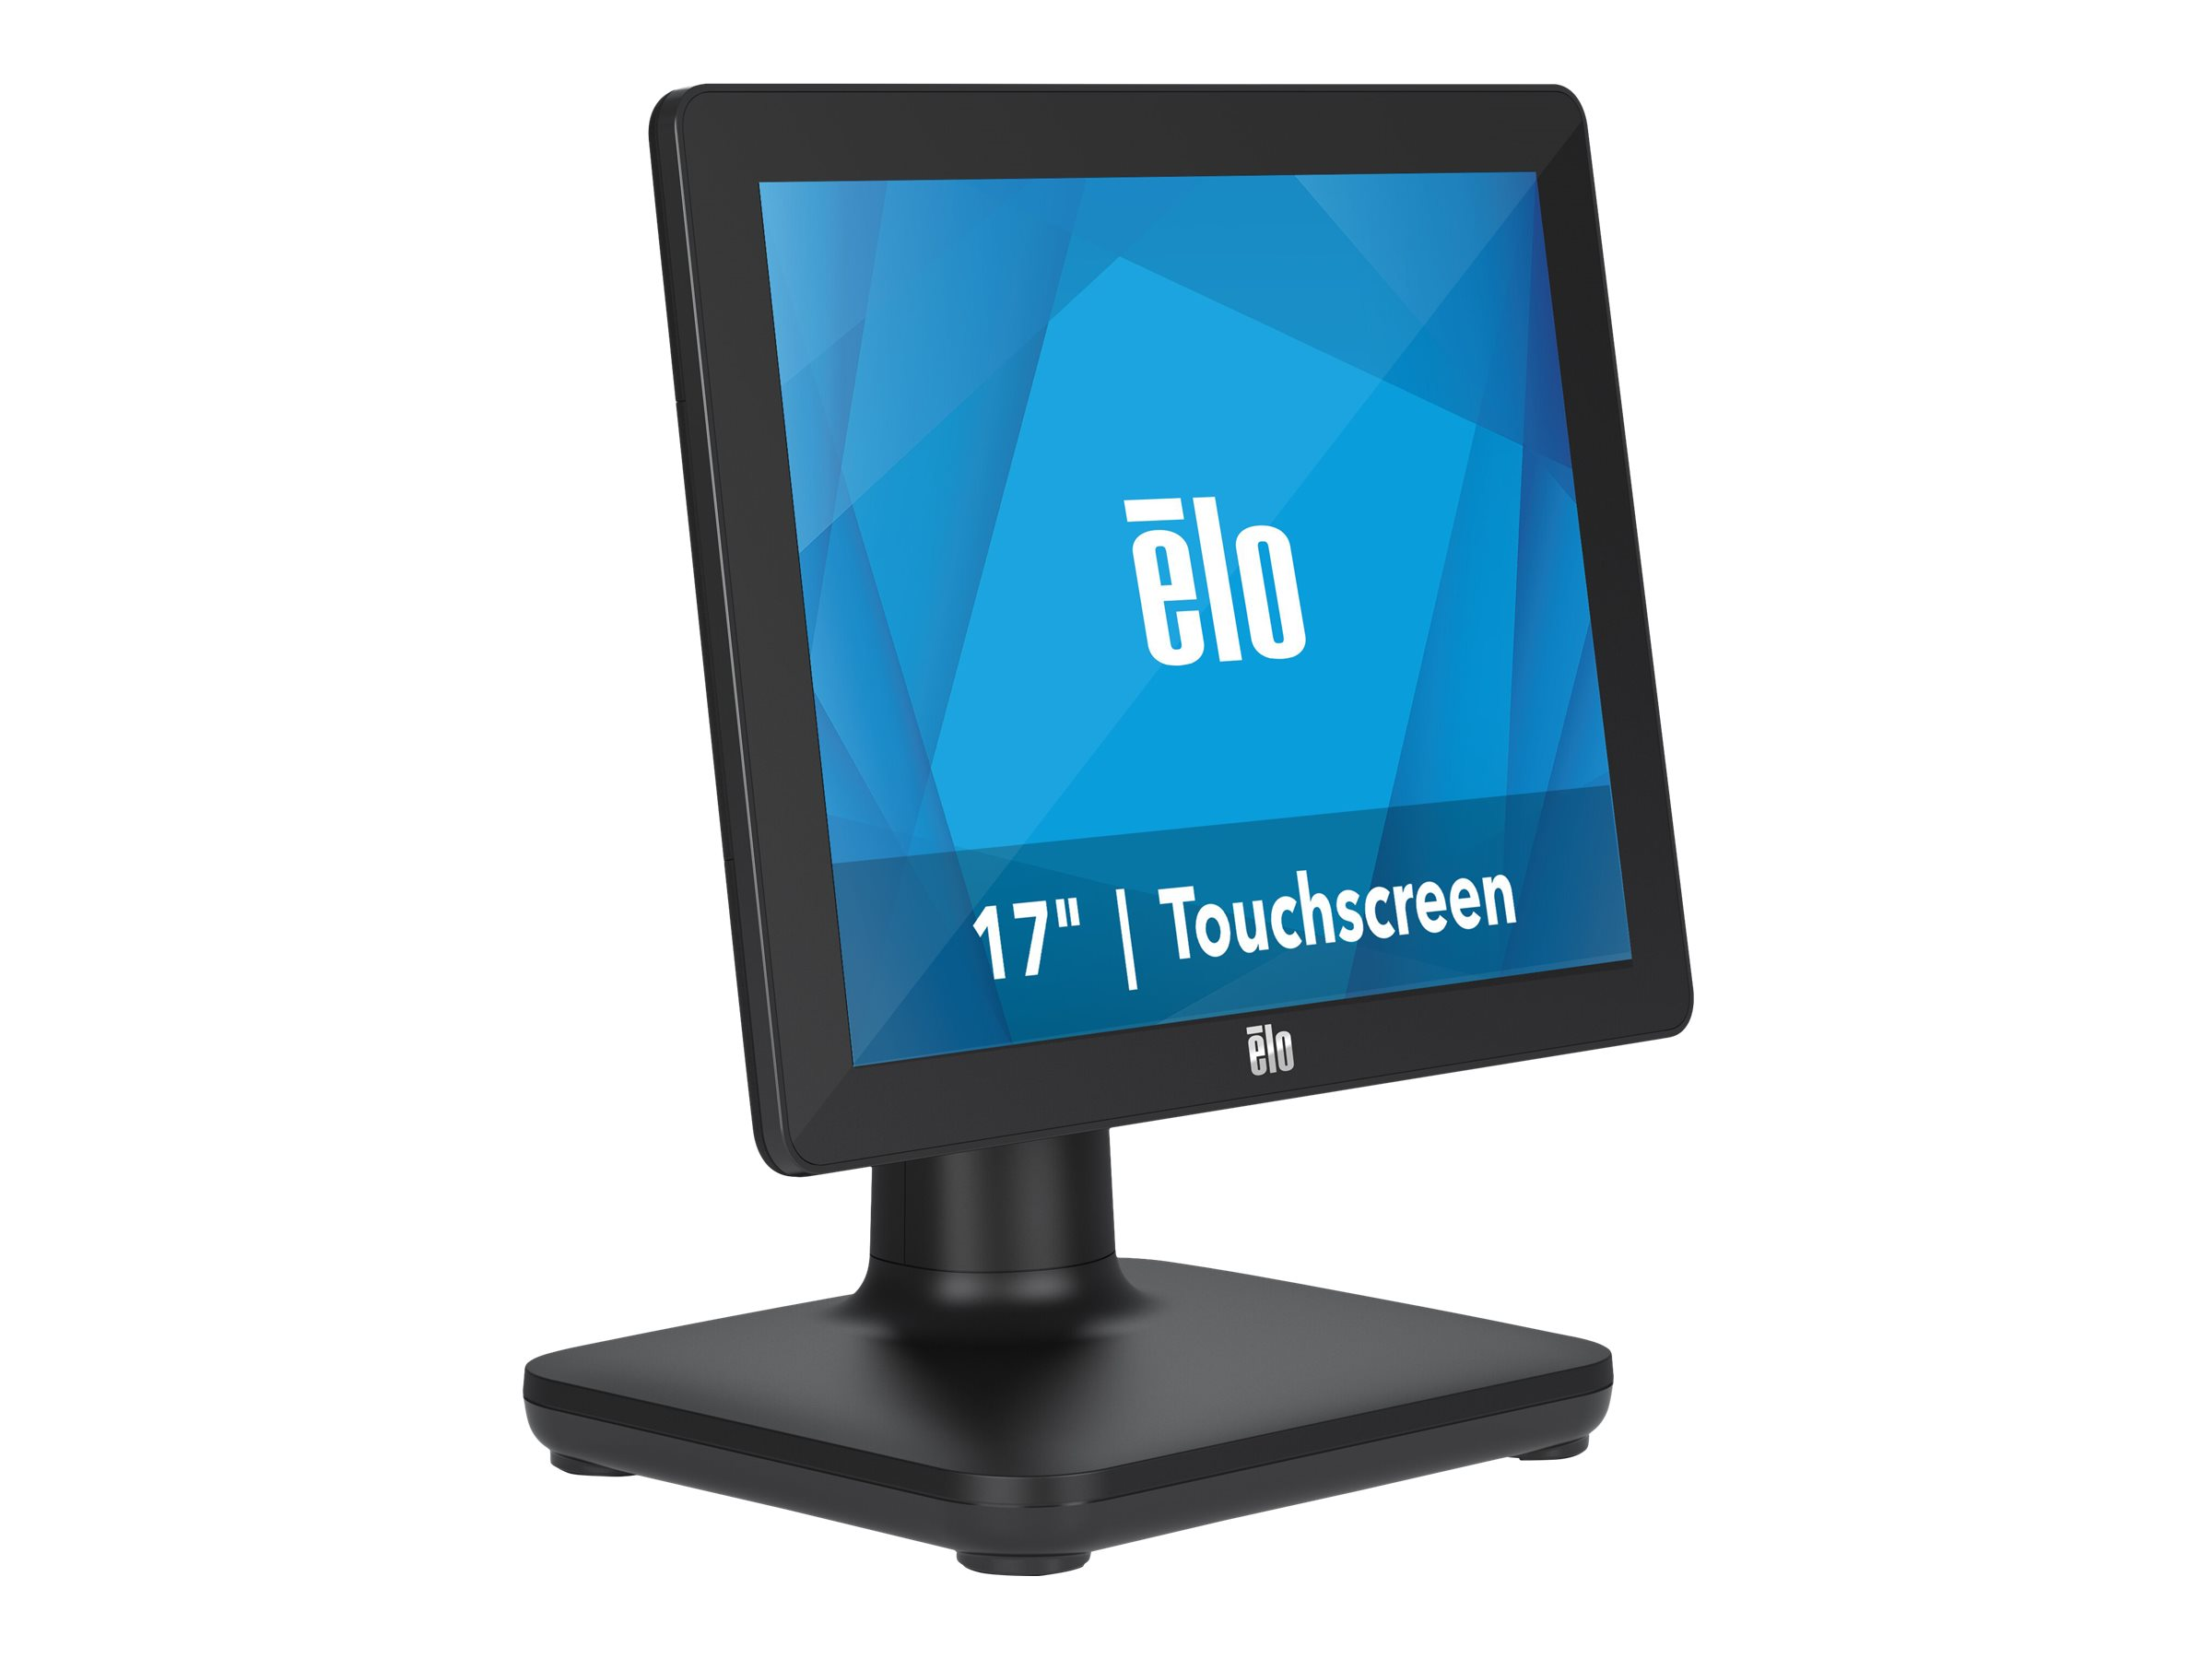 EloPOS System - with I/O Hub Stand - all-in-one - Core i3 8100T 3.1 GHz - 4 GB - SSD 128 GB - LED 17